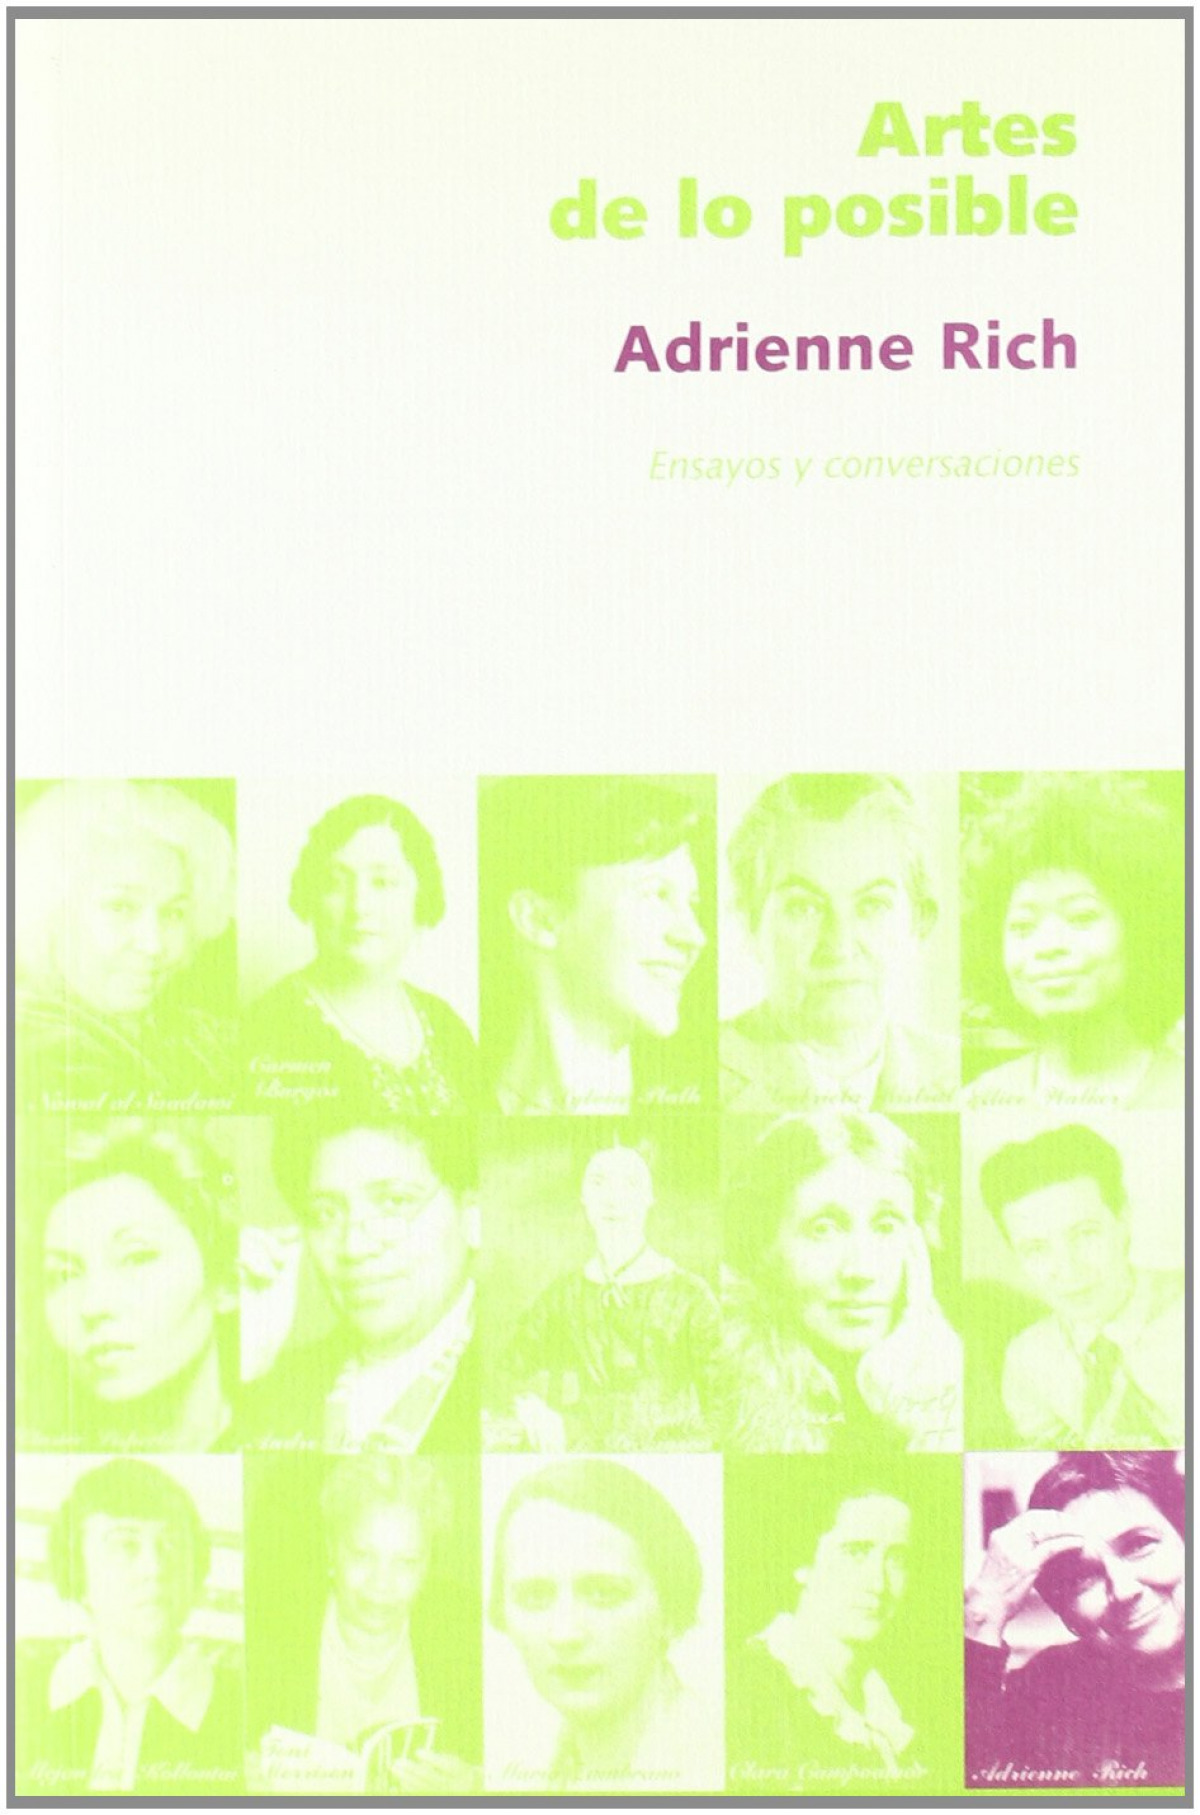 essays by adrienne rich Based on adrienne rich's background i believe aunt jennifer did exist however, aunt jennifer was not rich's aunt aunt jennifer represented women all over the world, particularly women in american, who were caught under the oppressive hand of a patriarchal society.